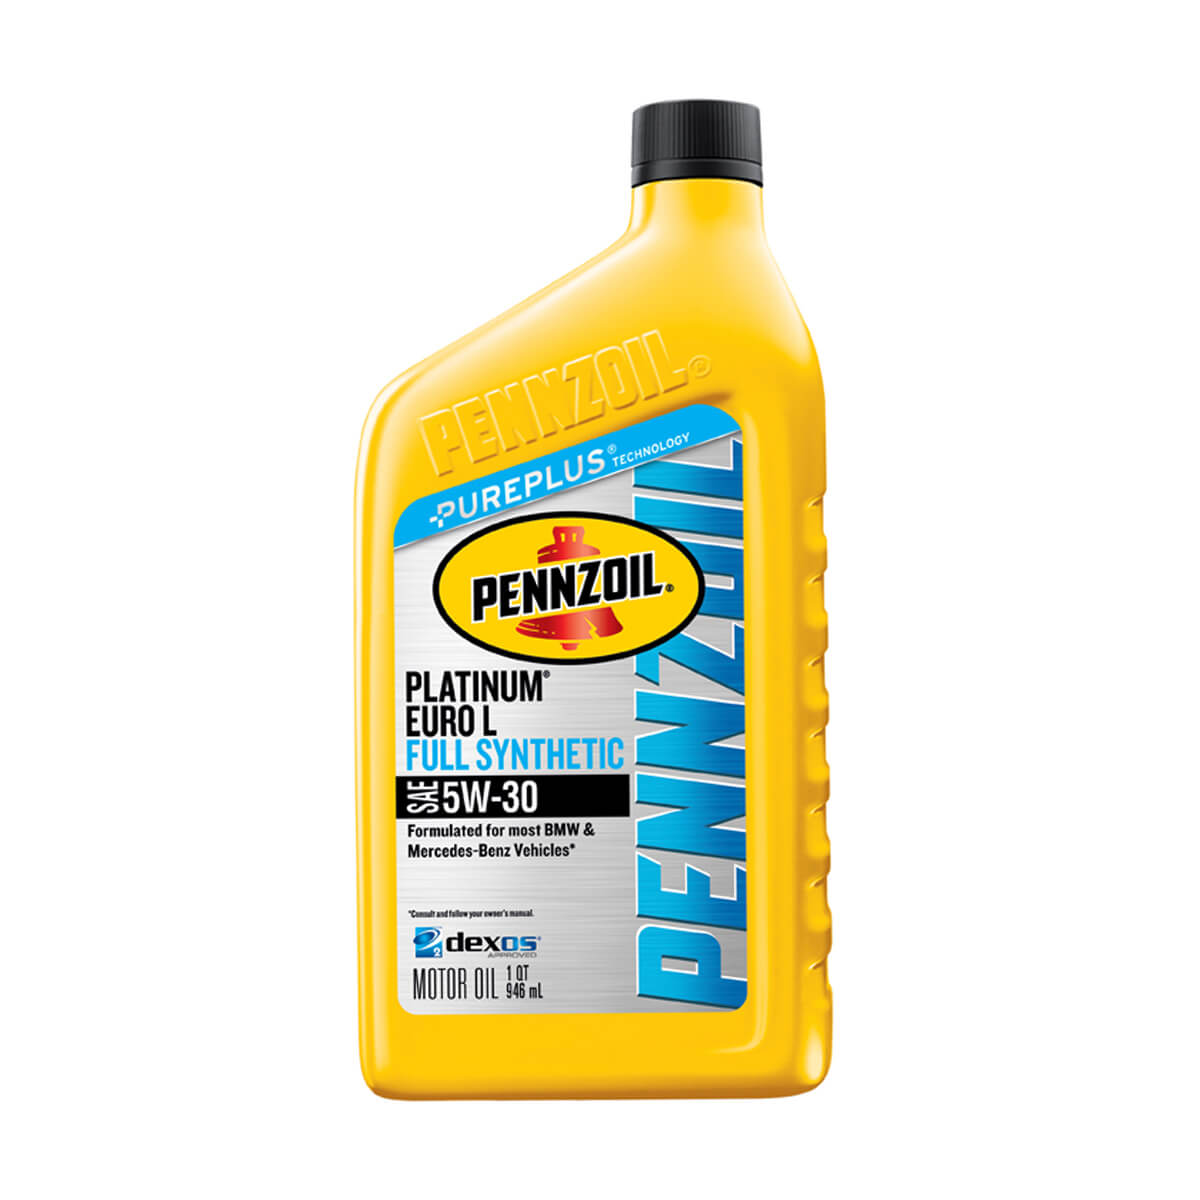 Shell Pennzoil Platinum Euro Synthetic 5W-30 - 0.946L